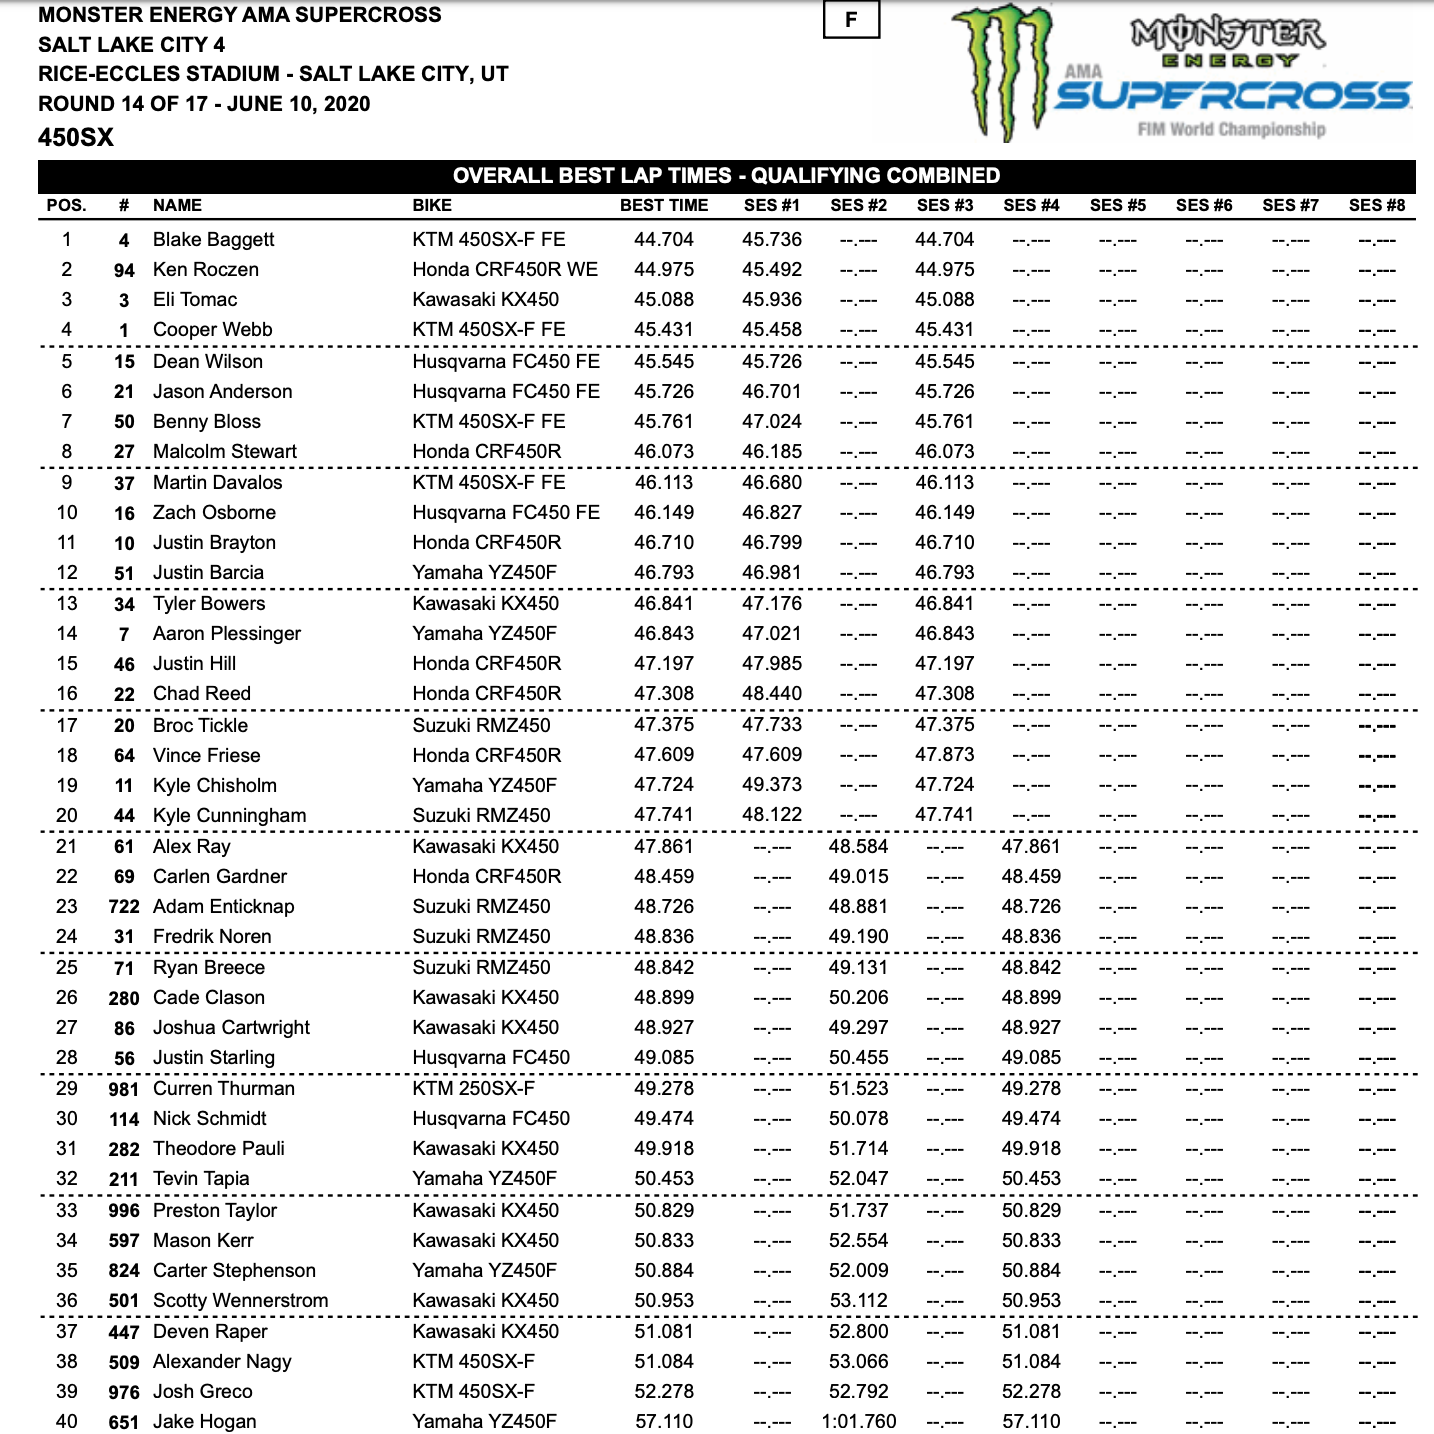 2020 Salt Lake City SX Qualifying Times – Rd14